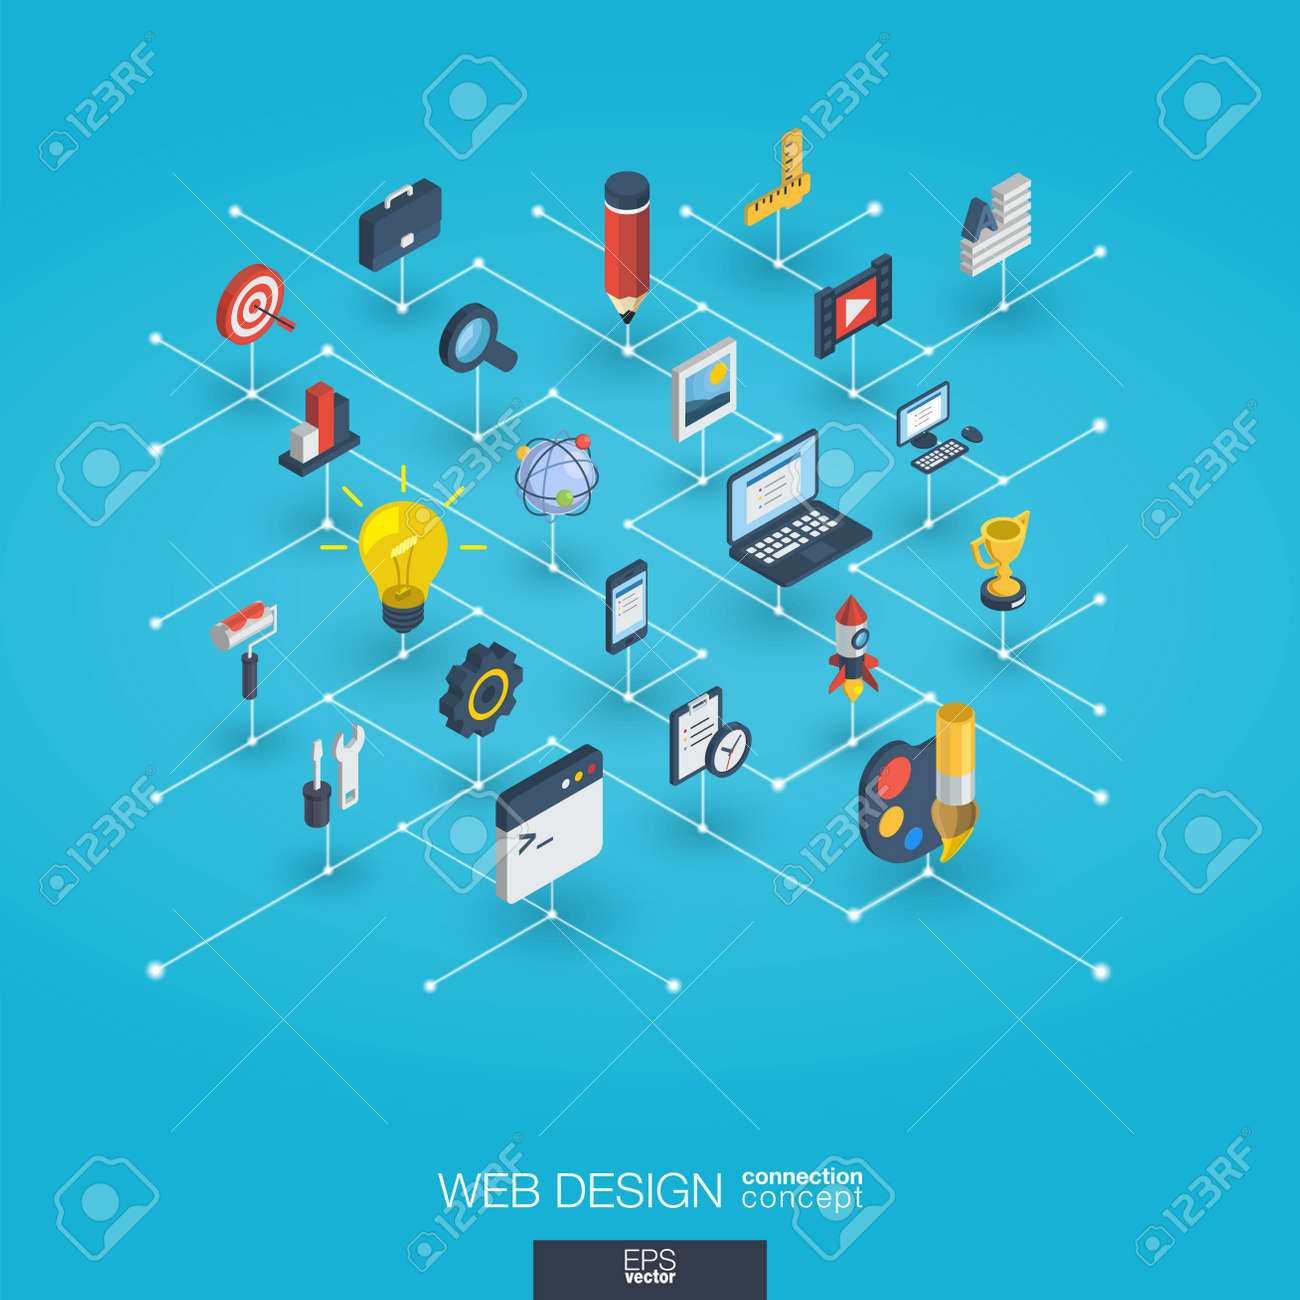 Web development integrated 3d icons. Digital network isometric interact concept. Connected graphic design dot and line system. Abstract background for seo, website, app design. Vector Infograph - 89704973